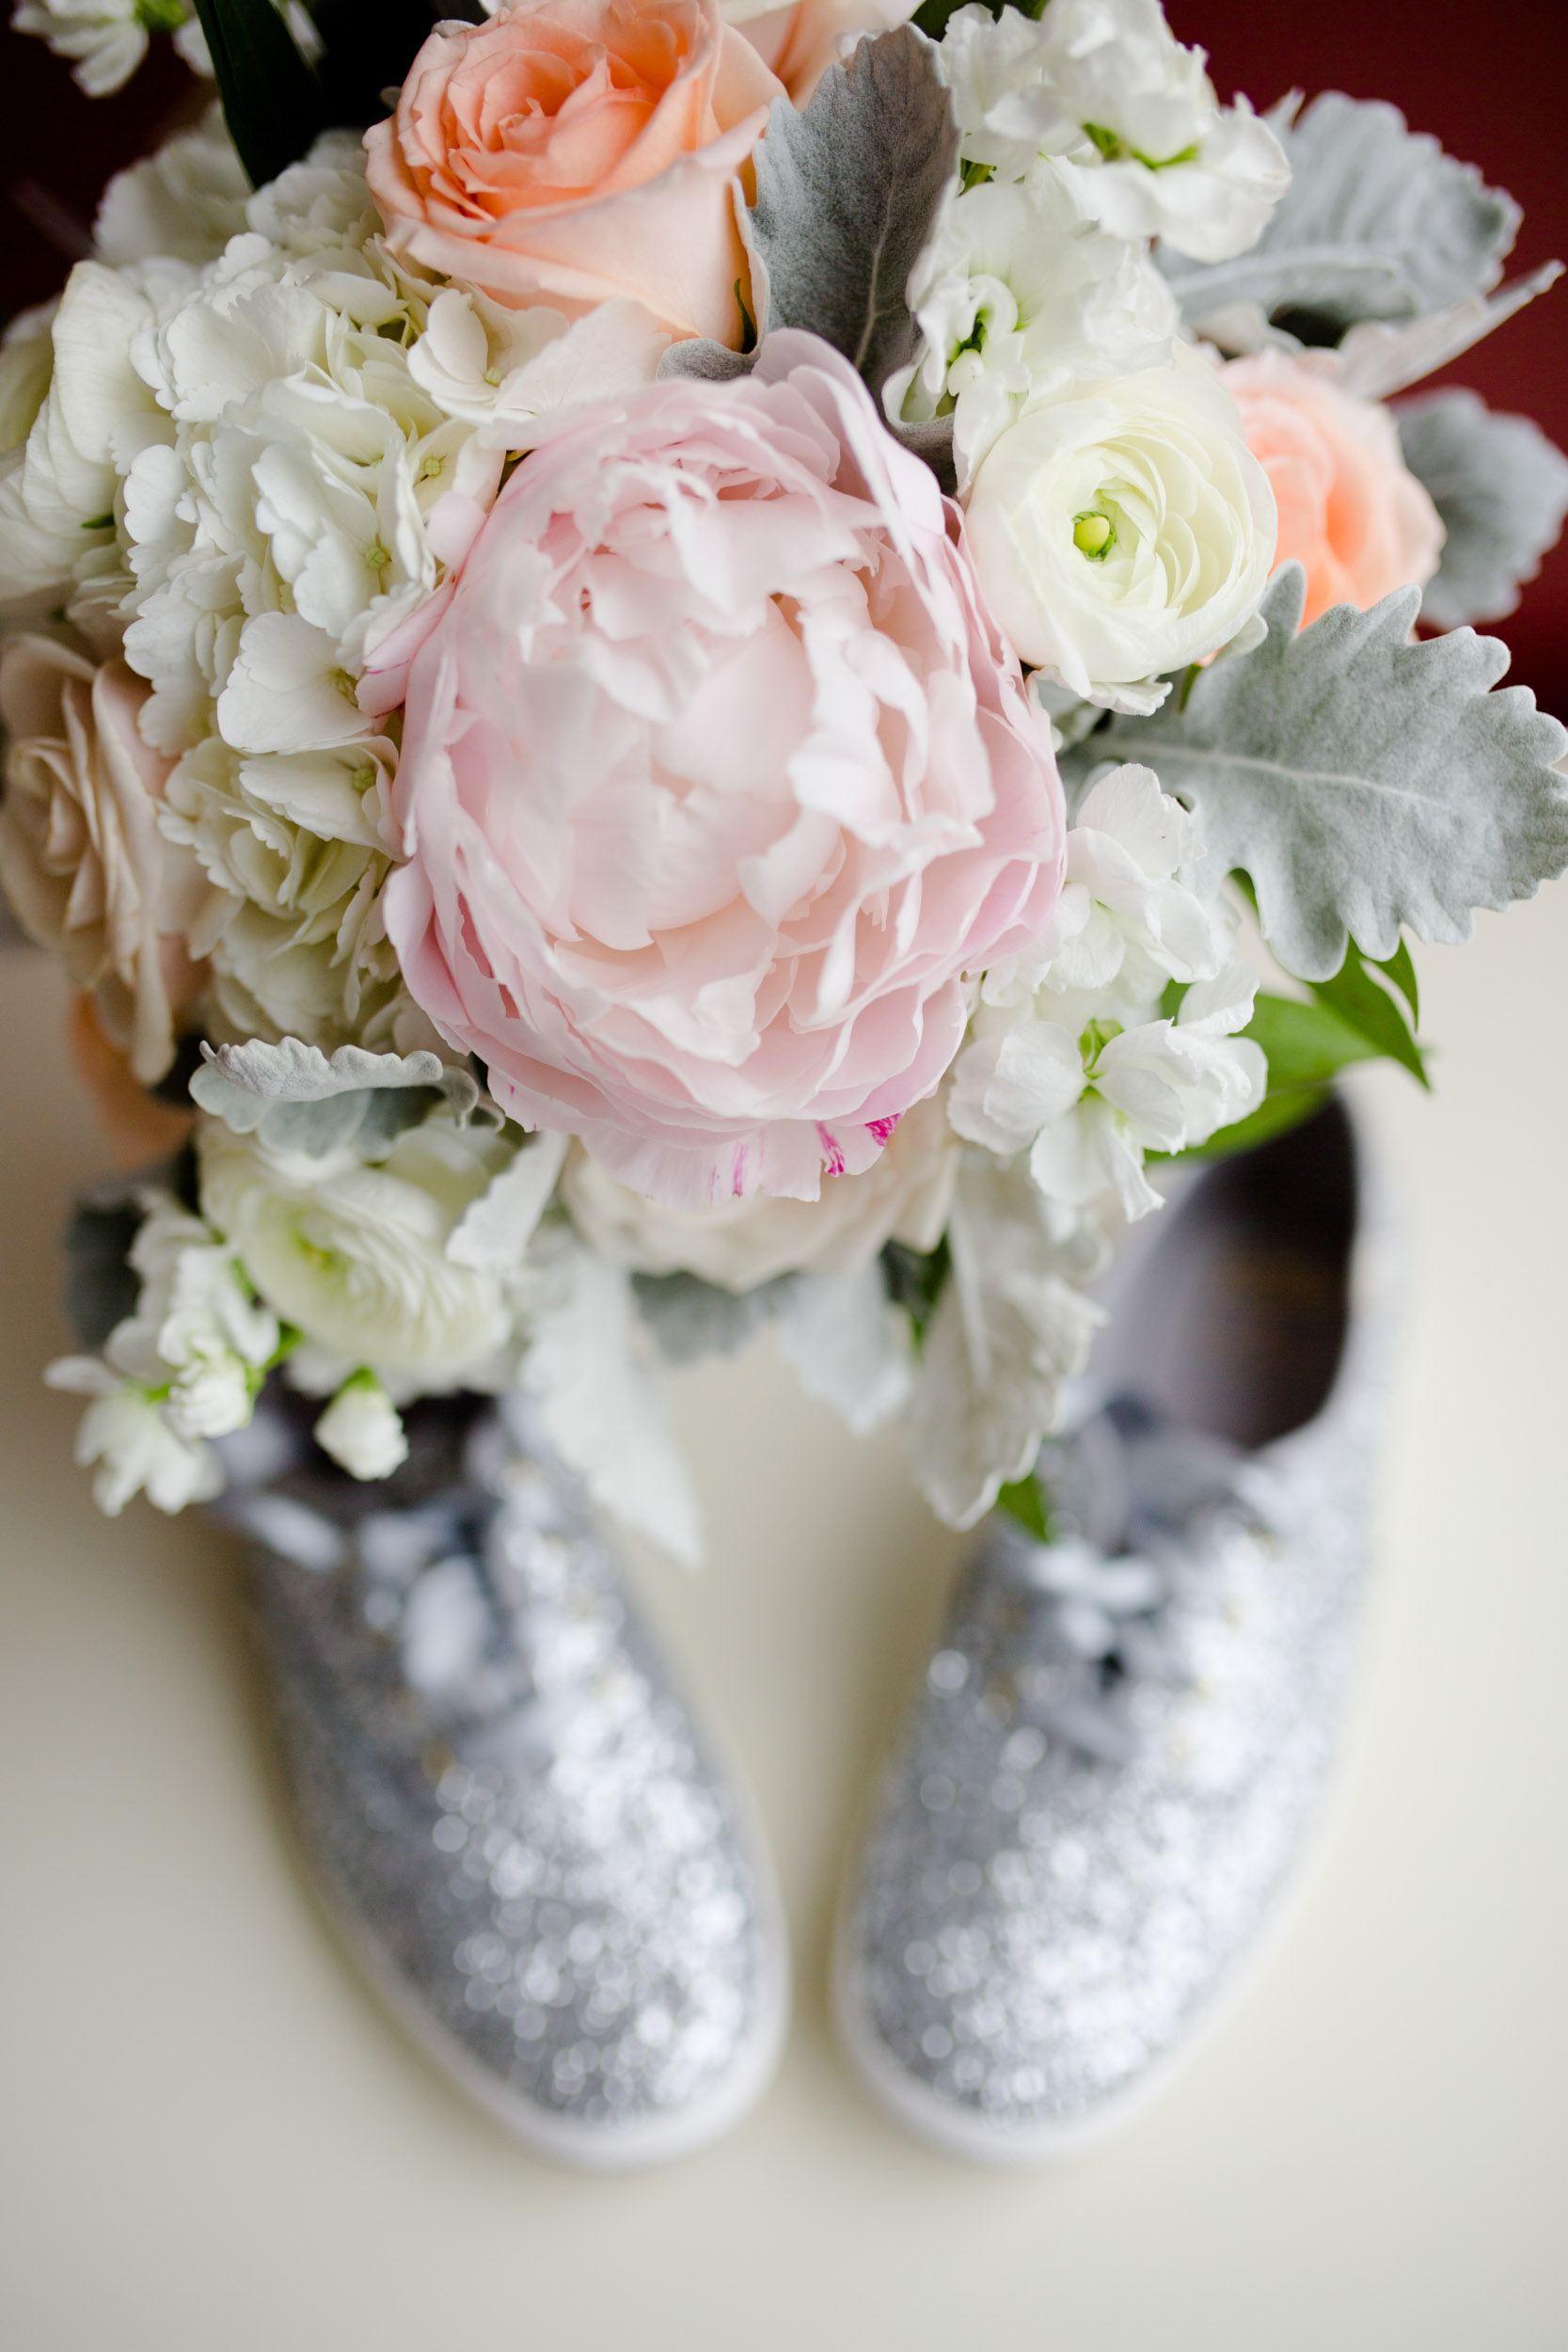 Wedding bouquet and shoes for Art Institute of Chicago ceremony and reception.